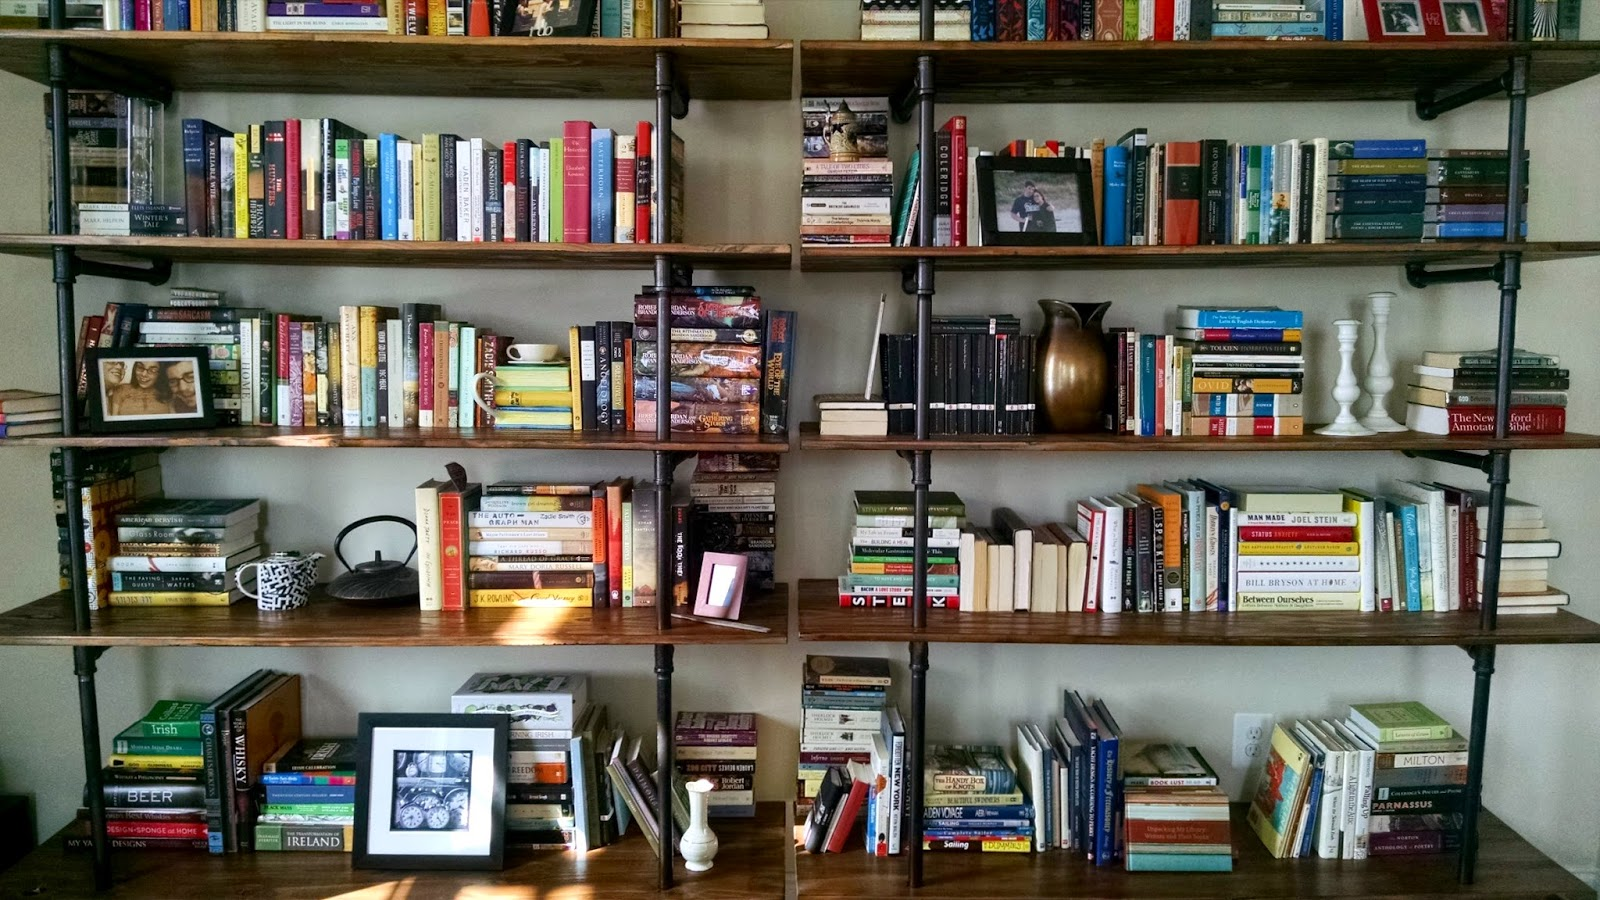 Shelving Systems - Entomology of a Bookworm